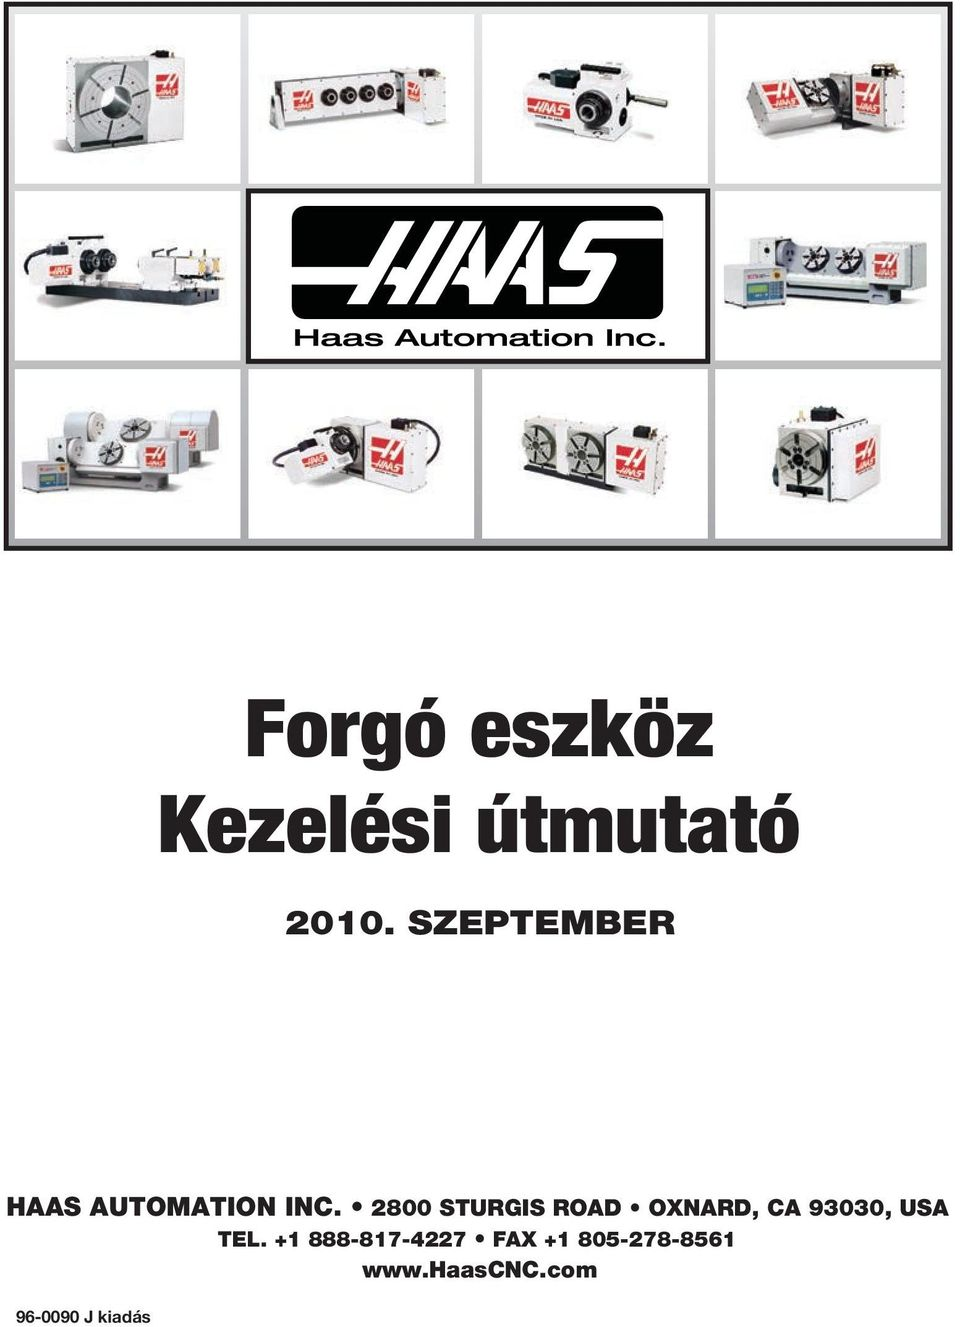 haas service and operator manual archive rotary operators manual rh docplayer hu Standard Operating Manual Instruction Manual